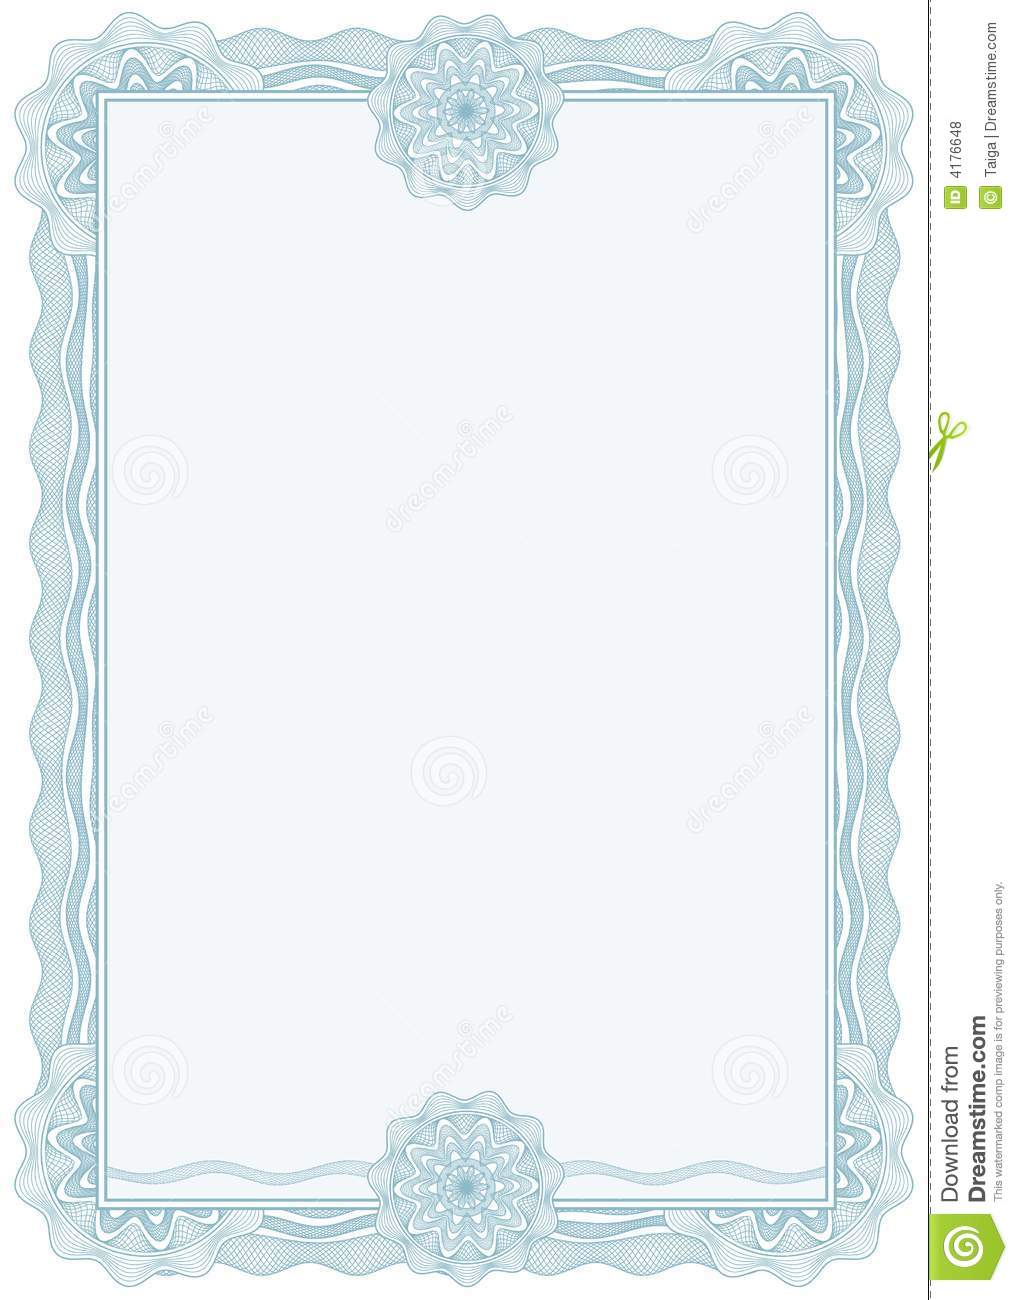 Diploma Or Certificate / Border / A4 / Vector  Certificate Border Template Free